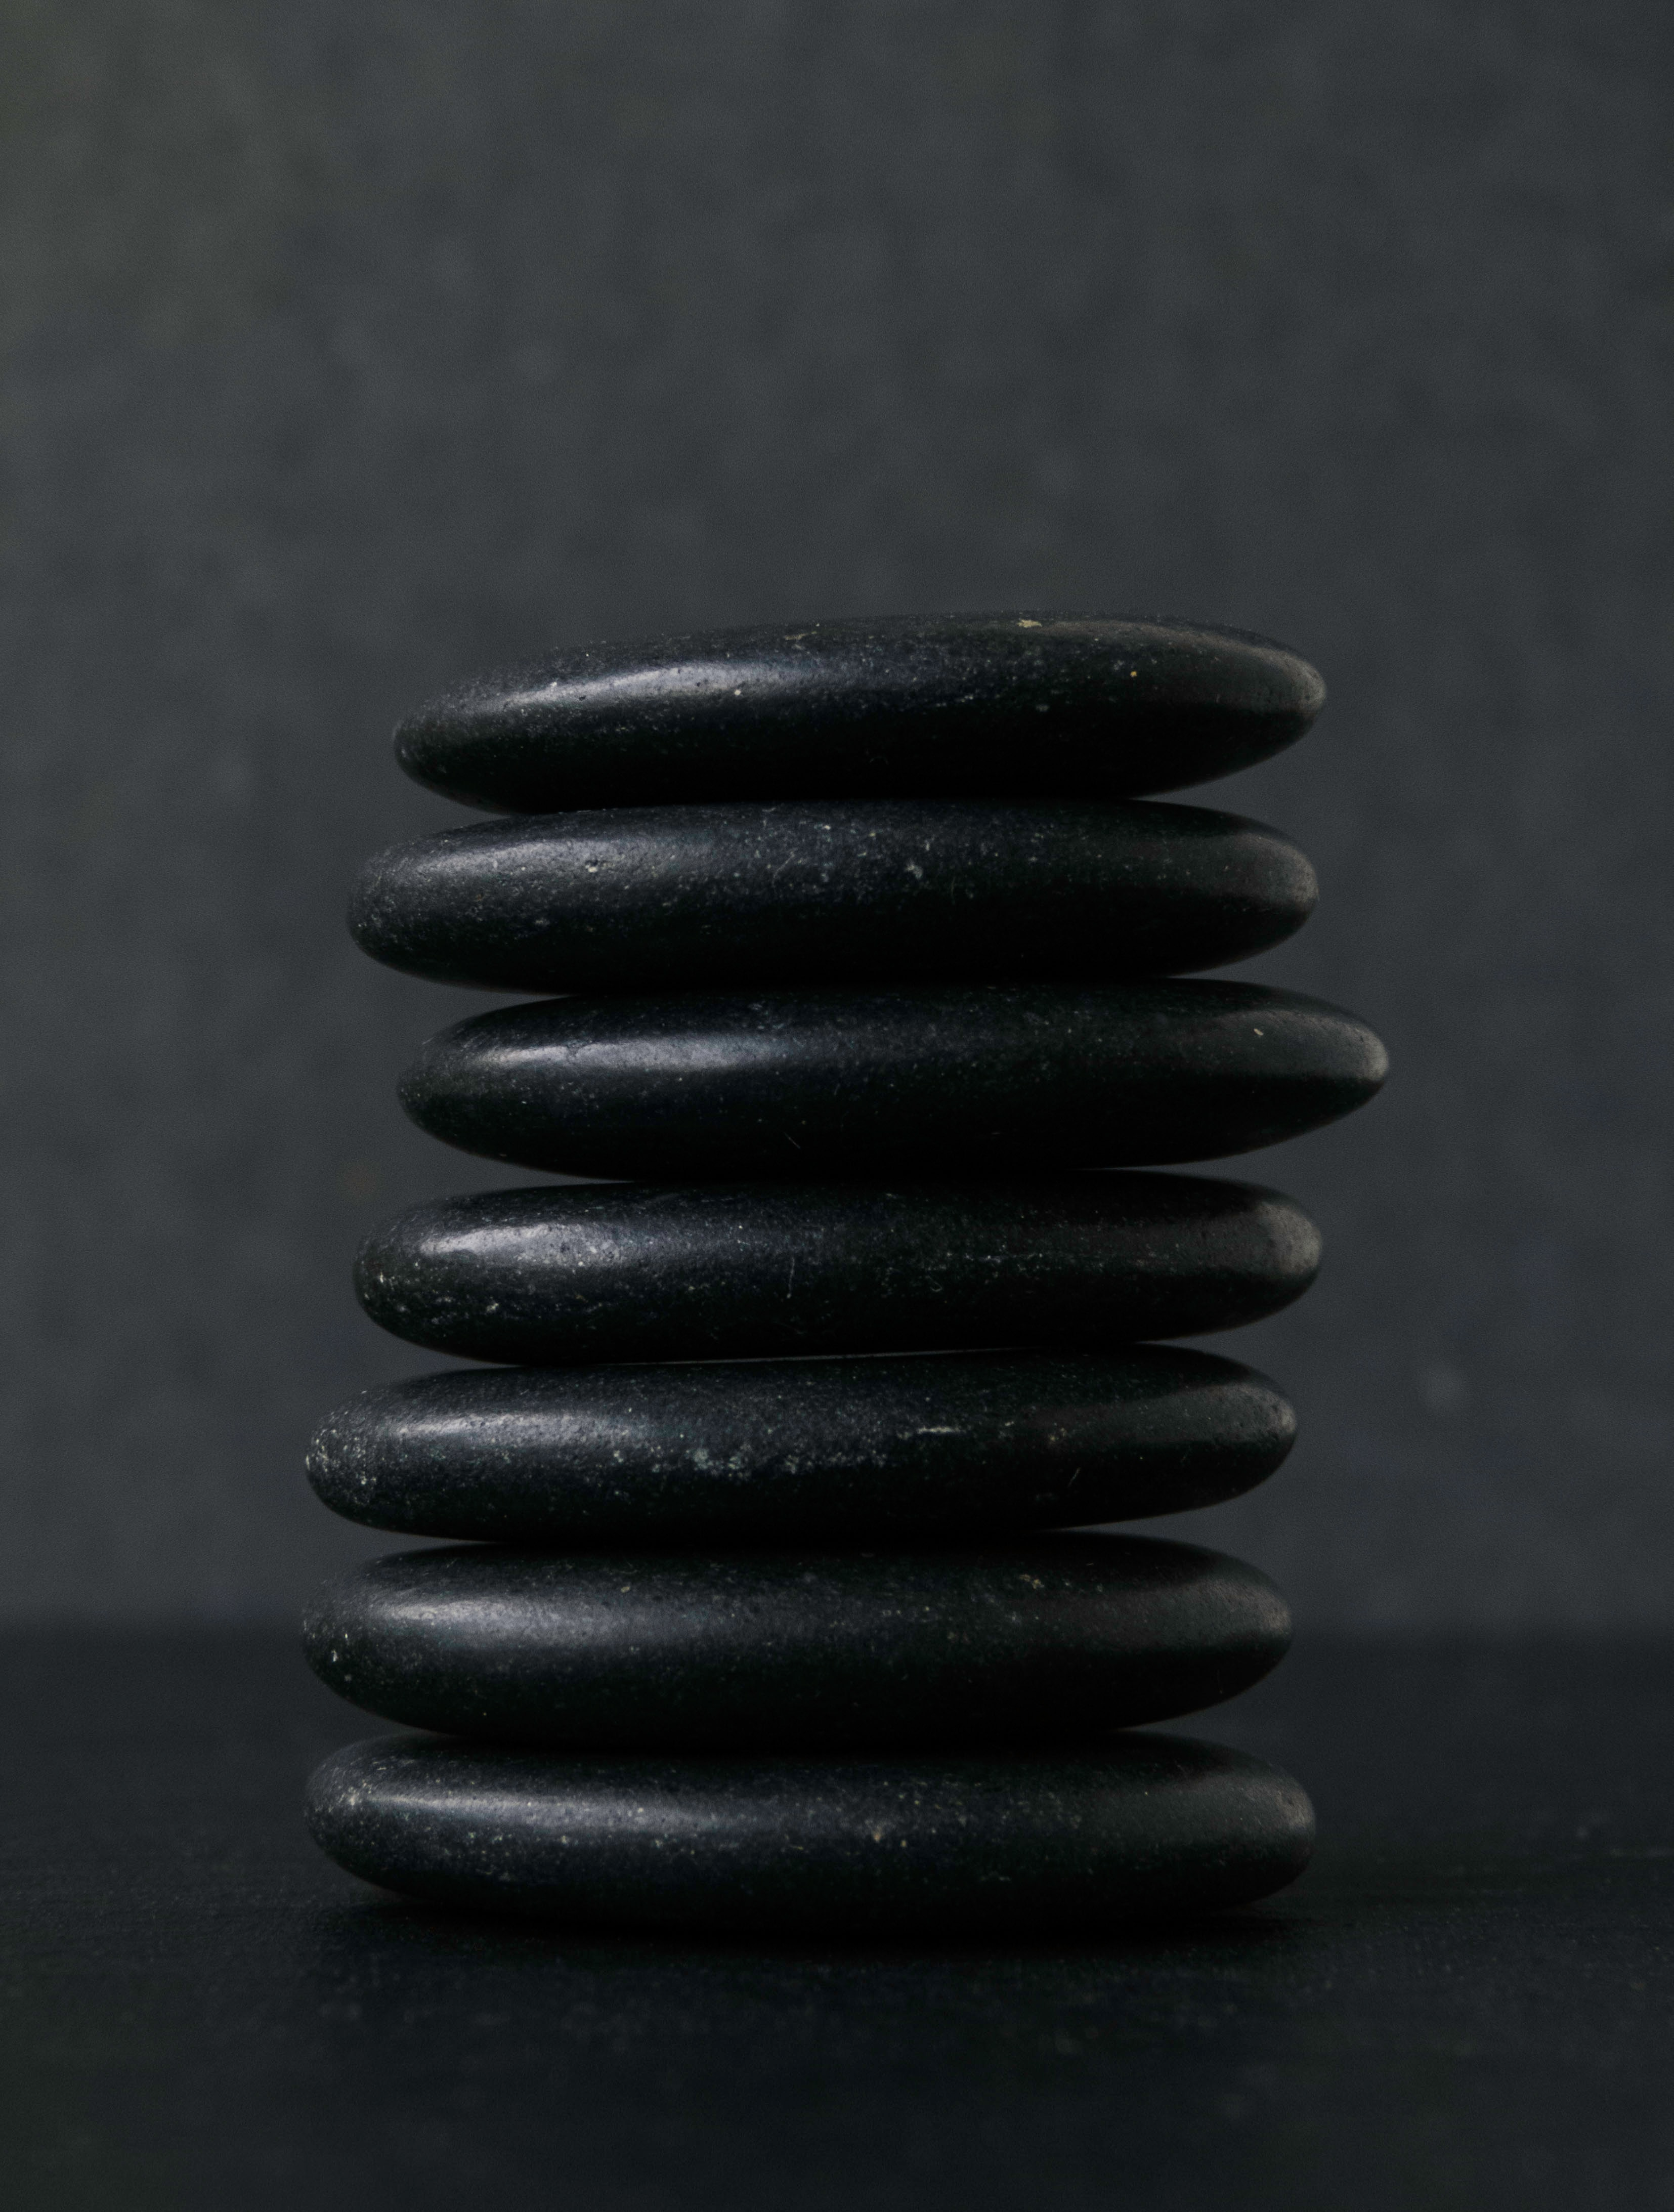 80971 download wallpaper Stones, Balance, Miscellanea, Miscellaneous, Harmony, Basalt screensavers and pictures for free